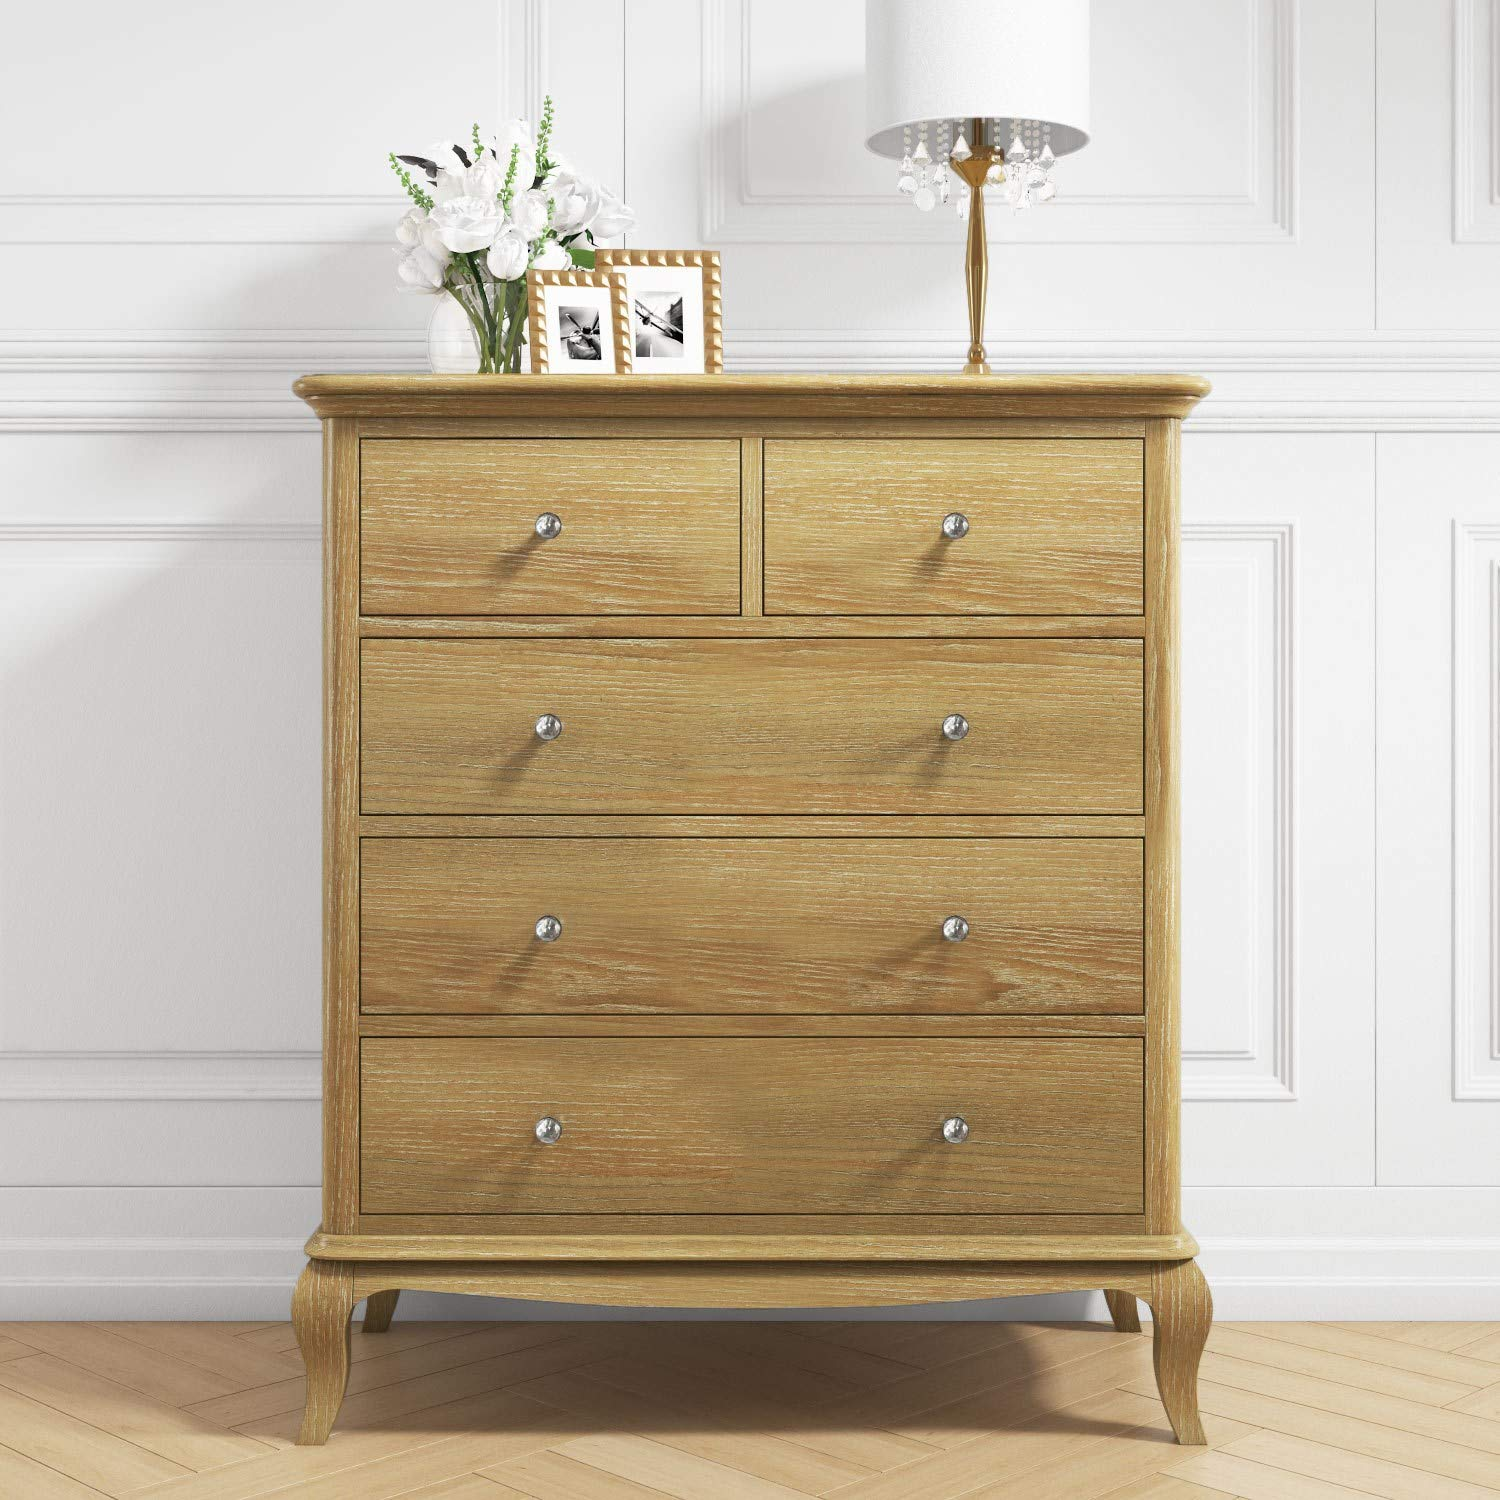 Fonteyn 2 3 Solid Oak Chest Of Drawers French Style Amazon Co